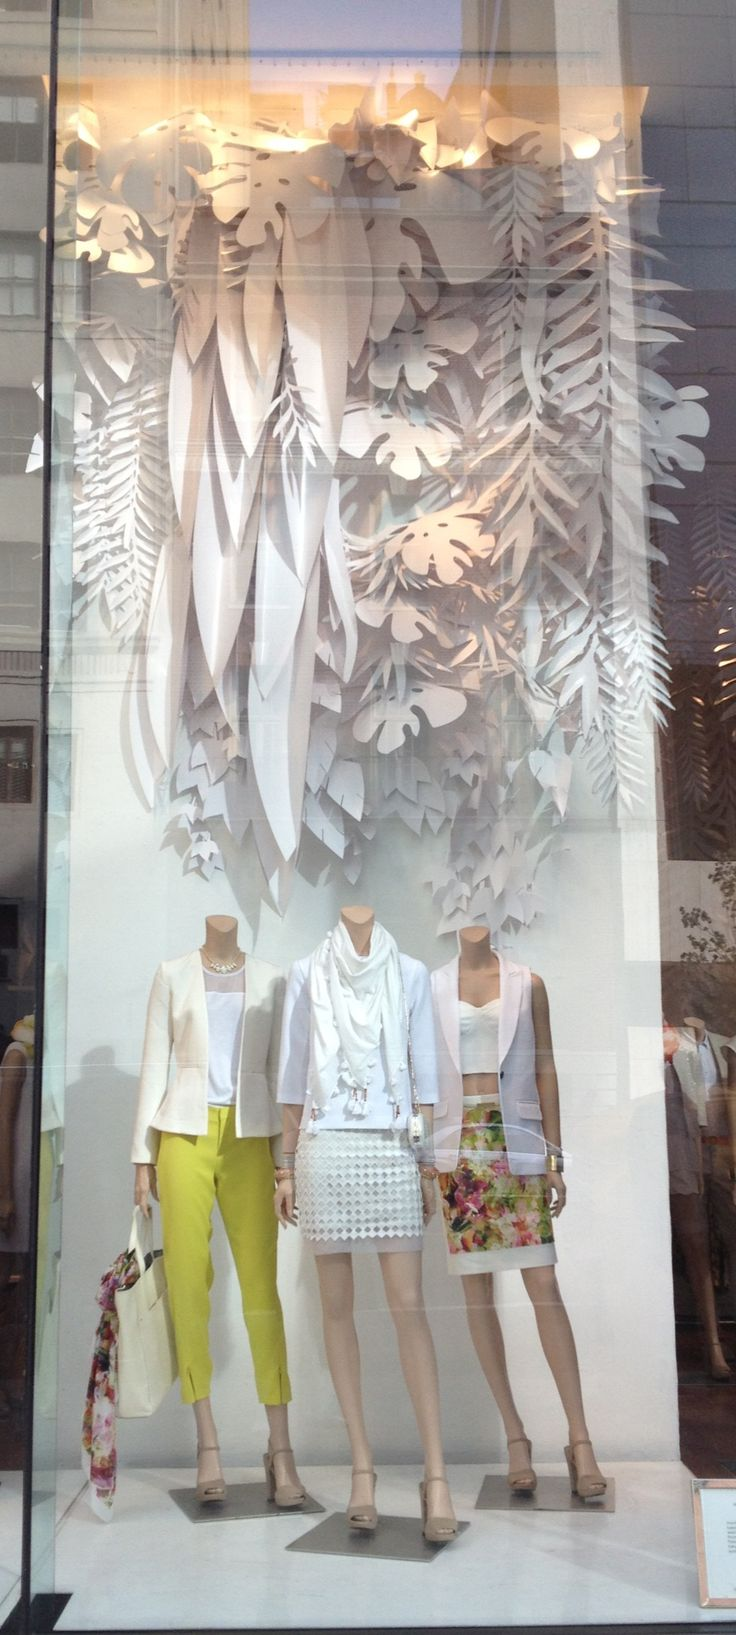 Club Monaco | NYC Spring 2013. Amamos vitrines bem boladas e produzidas com excelência. Aqui fizemos nossa própria seleção do que nos encanta no Mundo das Vitrines. Esperamos que gostem! We love well done window displays! We create our own panel with our favorites just for you. www.vitrinemania.com.br